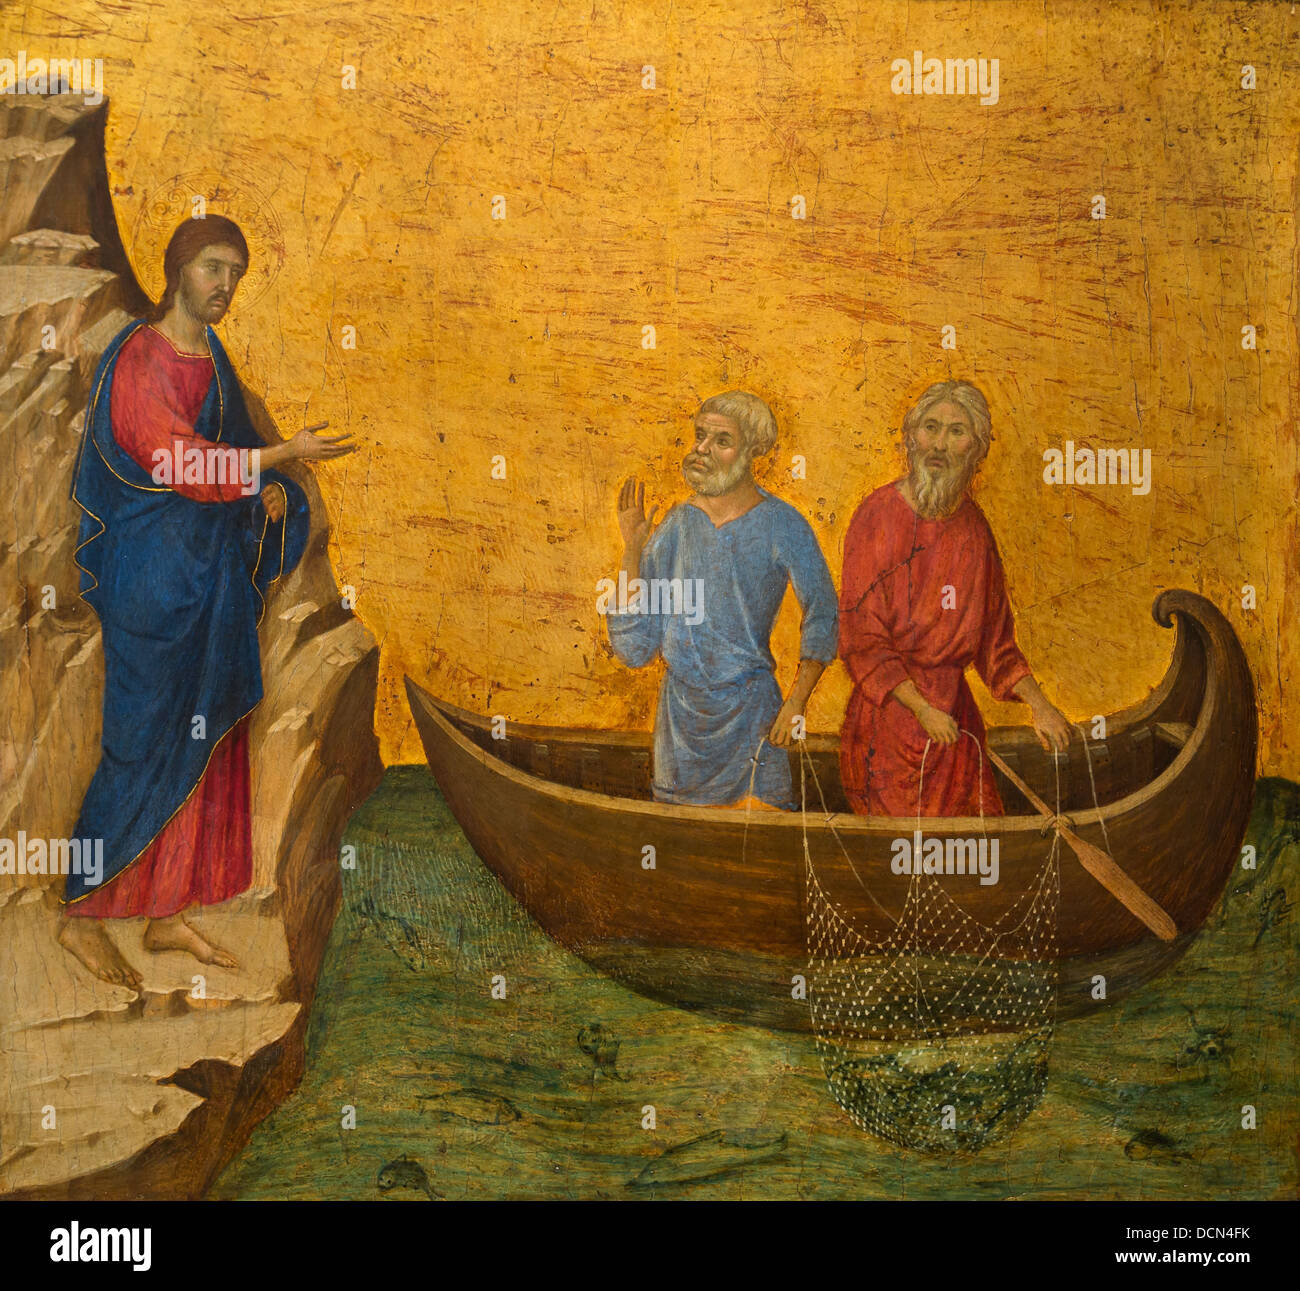 14th century  -  The Calling of the Apostles Peter and Andrew, 1308 - Duccio di Buoninsegna - Stock Image